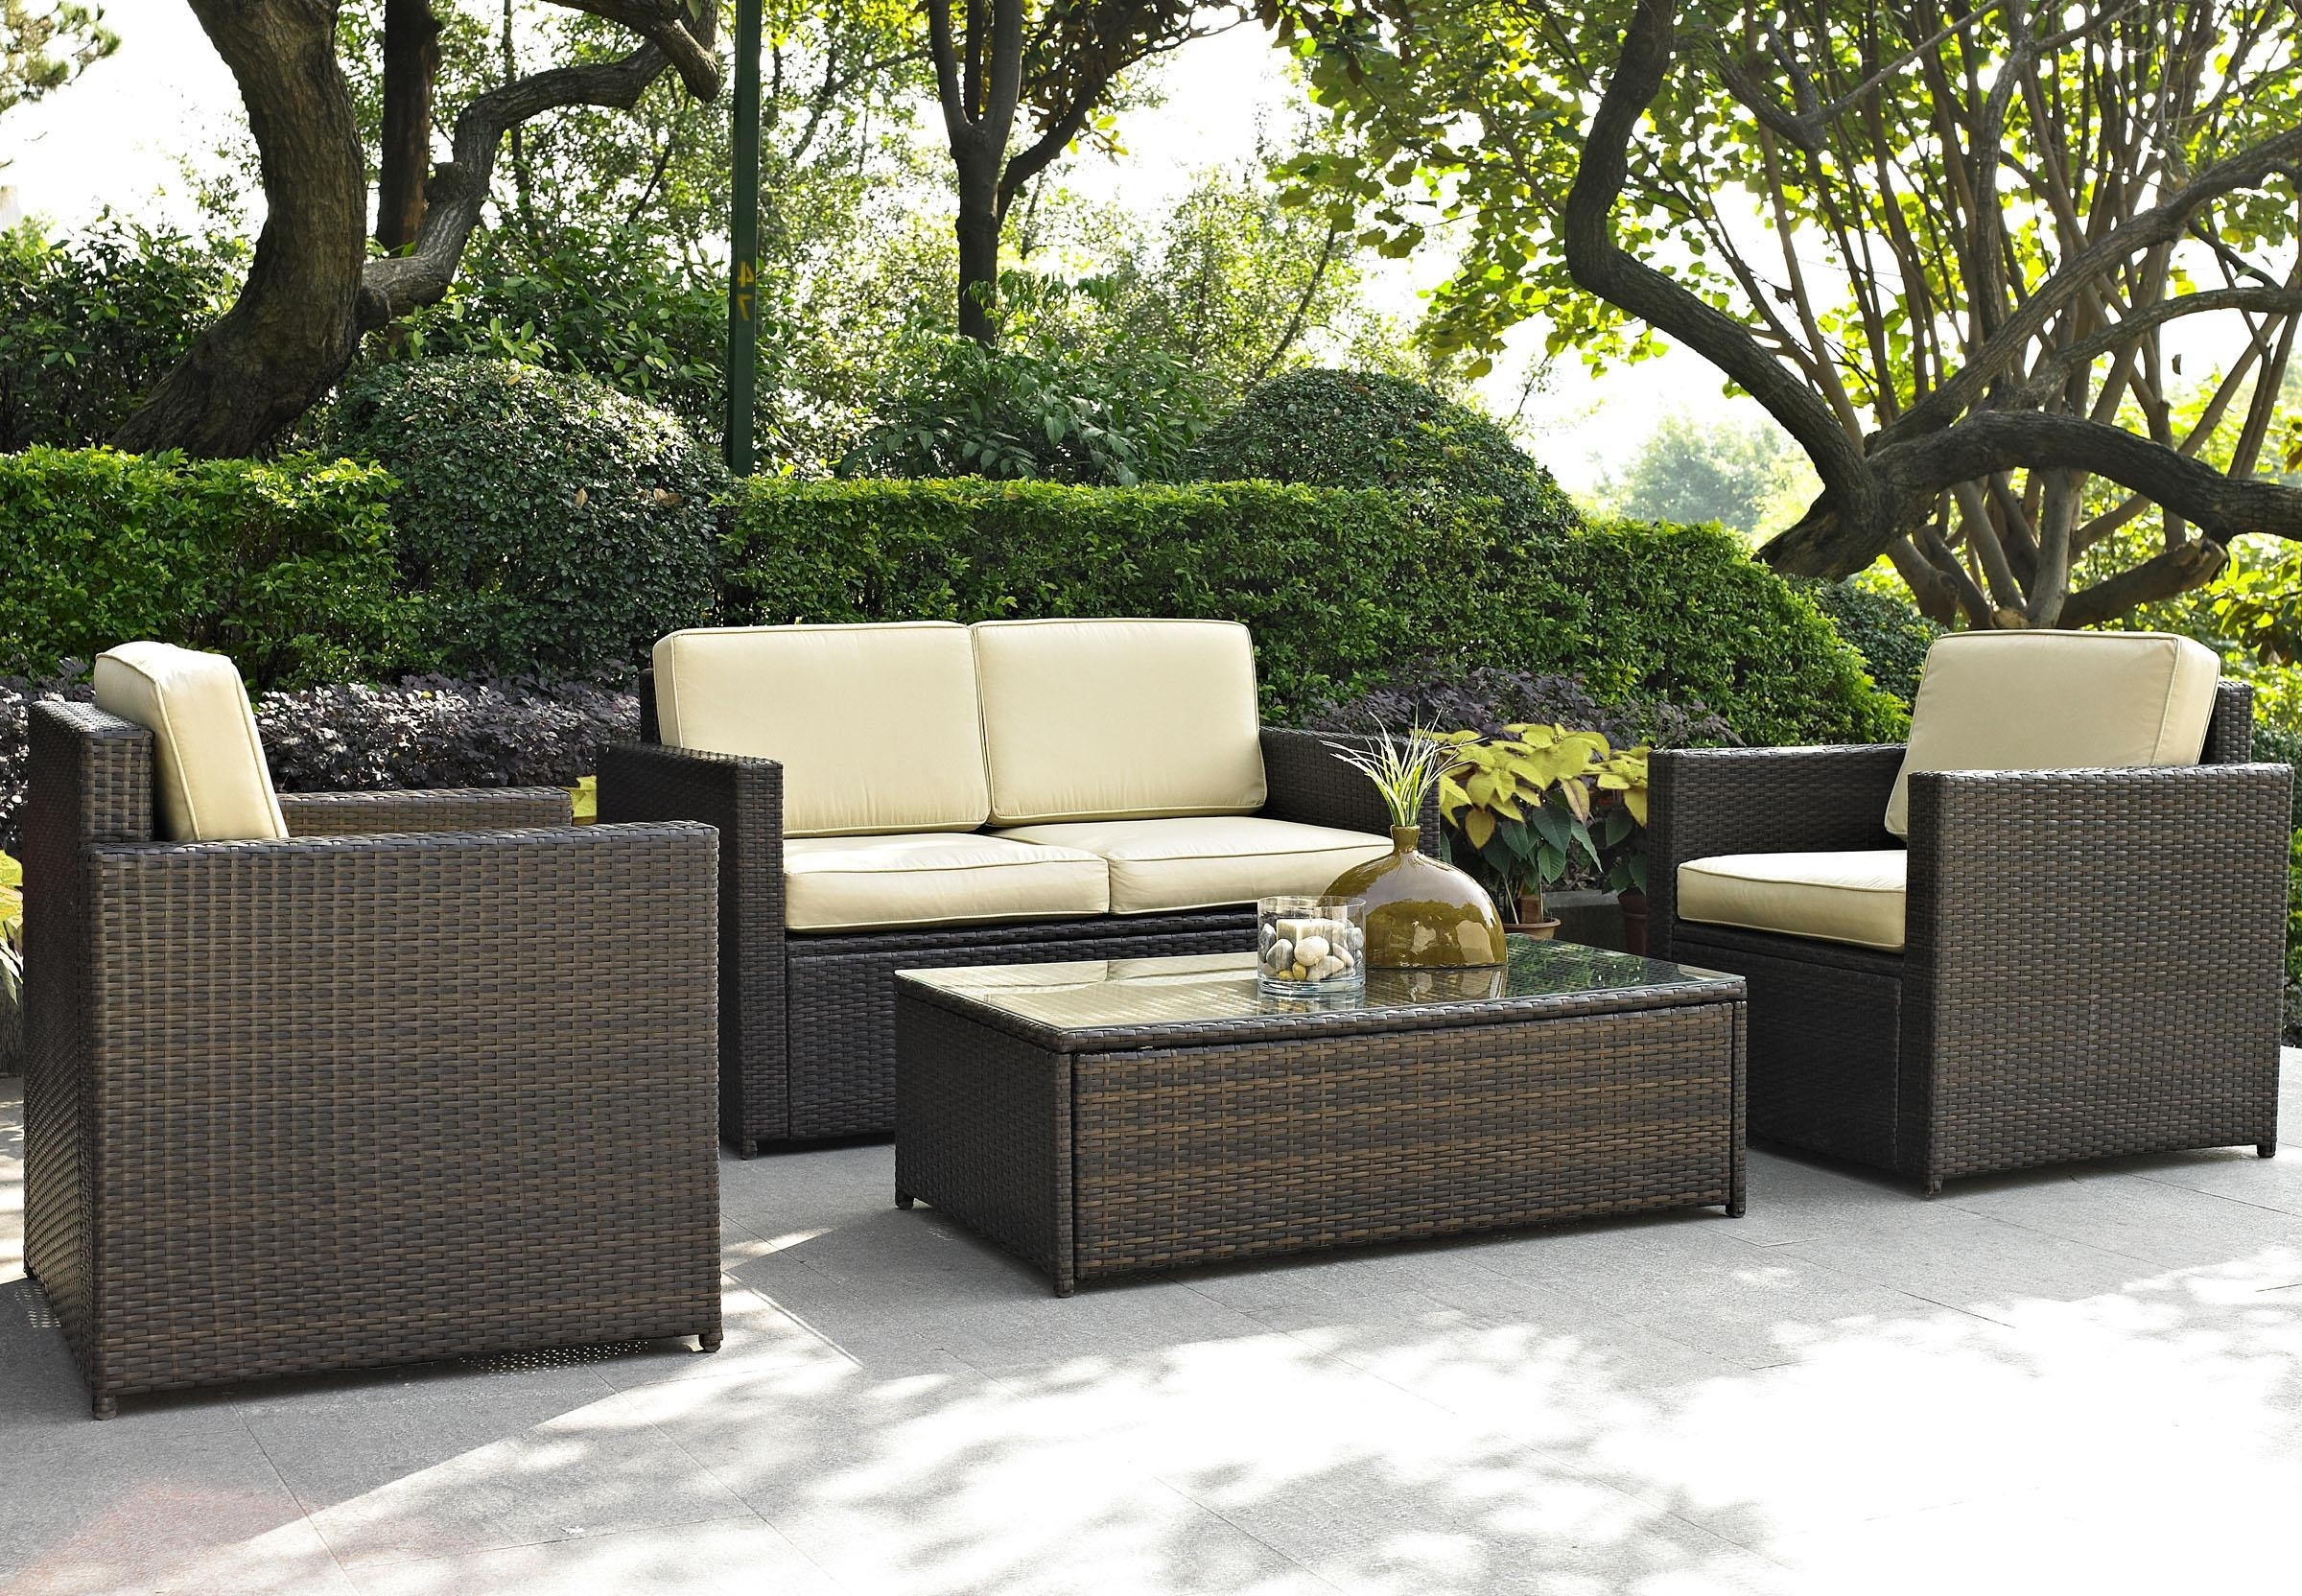 Trendy Patio Conversation Sets With Ottomans For Garden & Patio Furniture : Patio Rocking Chairs Patio Gravity Chair (View 15 of 15)